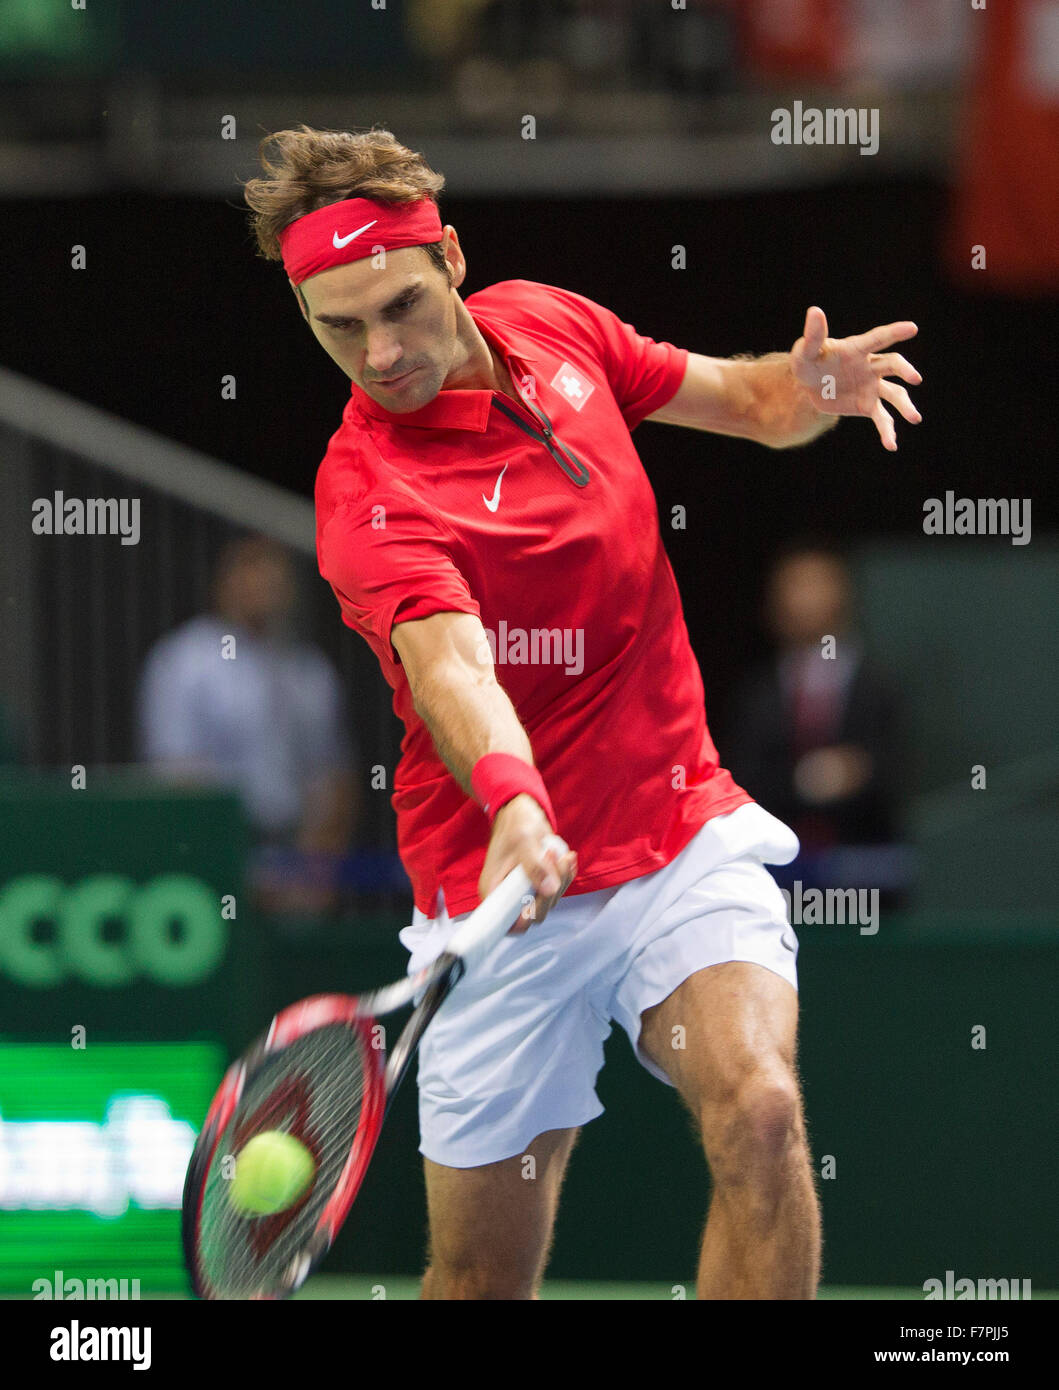 Switserland, Genève, Settembre 18, 2015, Tennis, Davis Cup, Switserland-Netherlands, Roger Federer (SUI) Foto: Immagini Stock